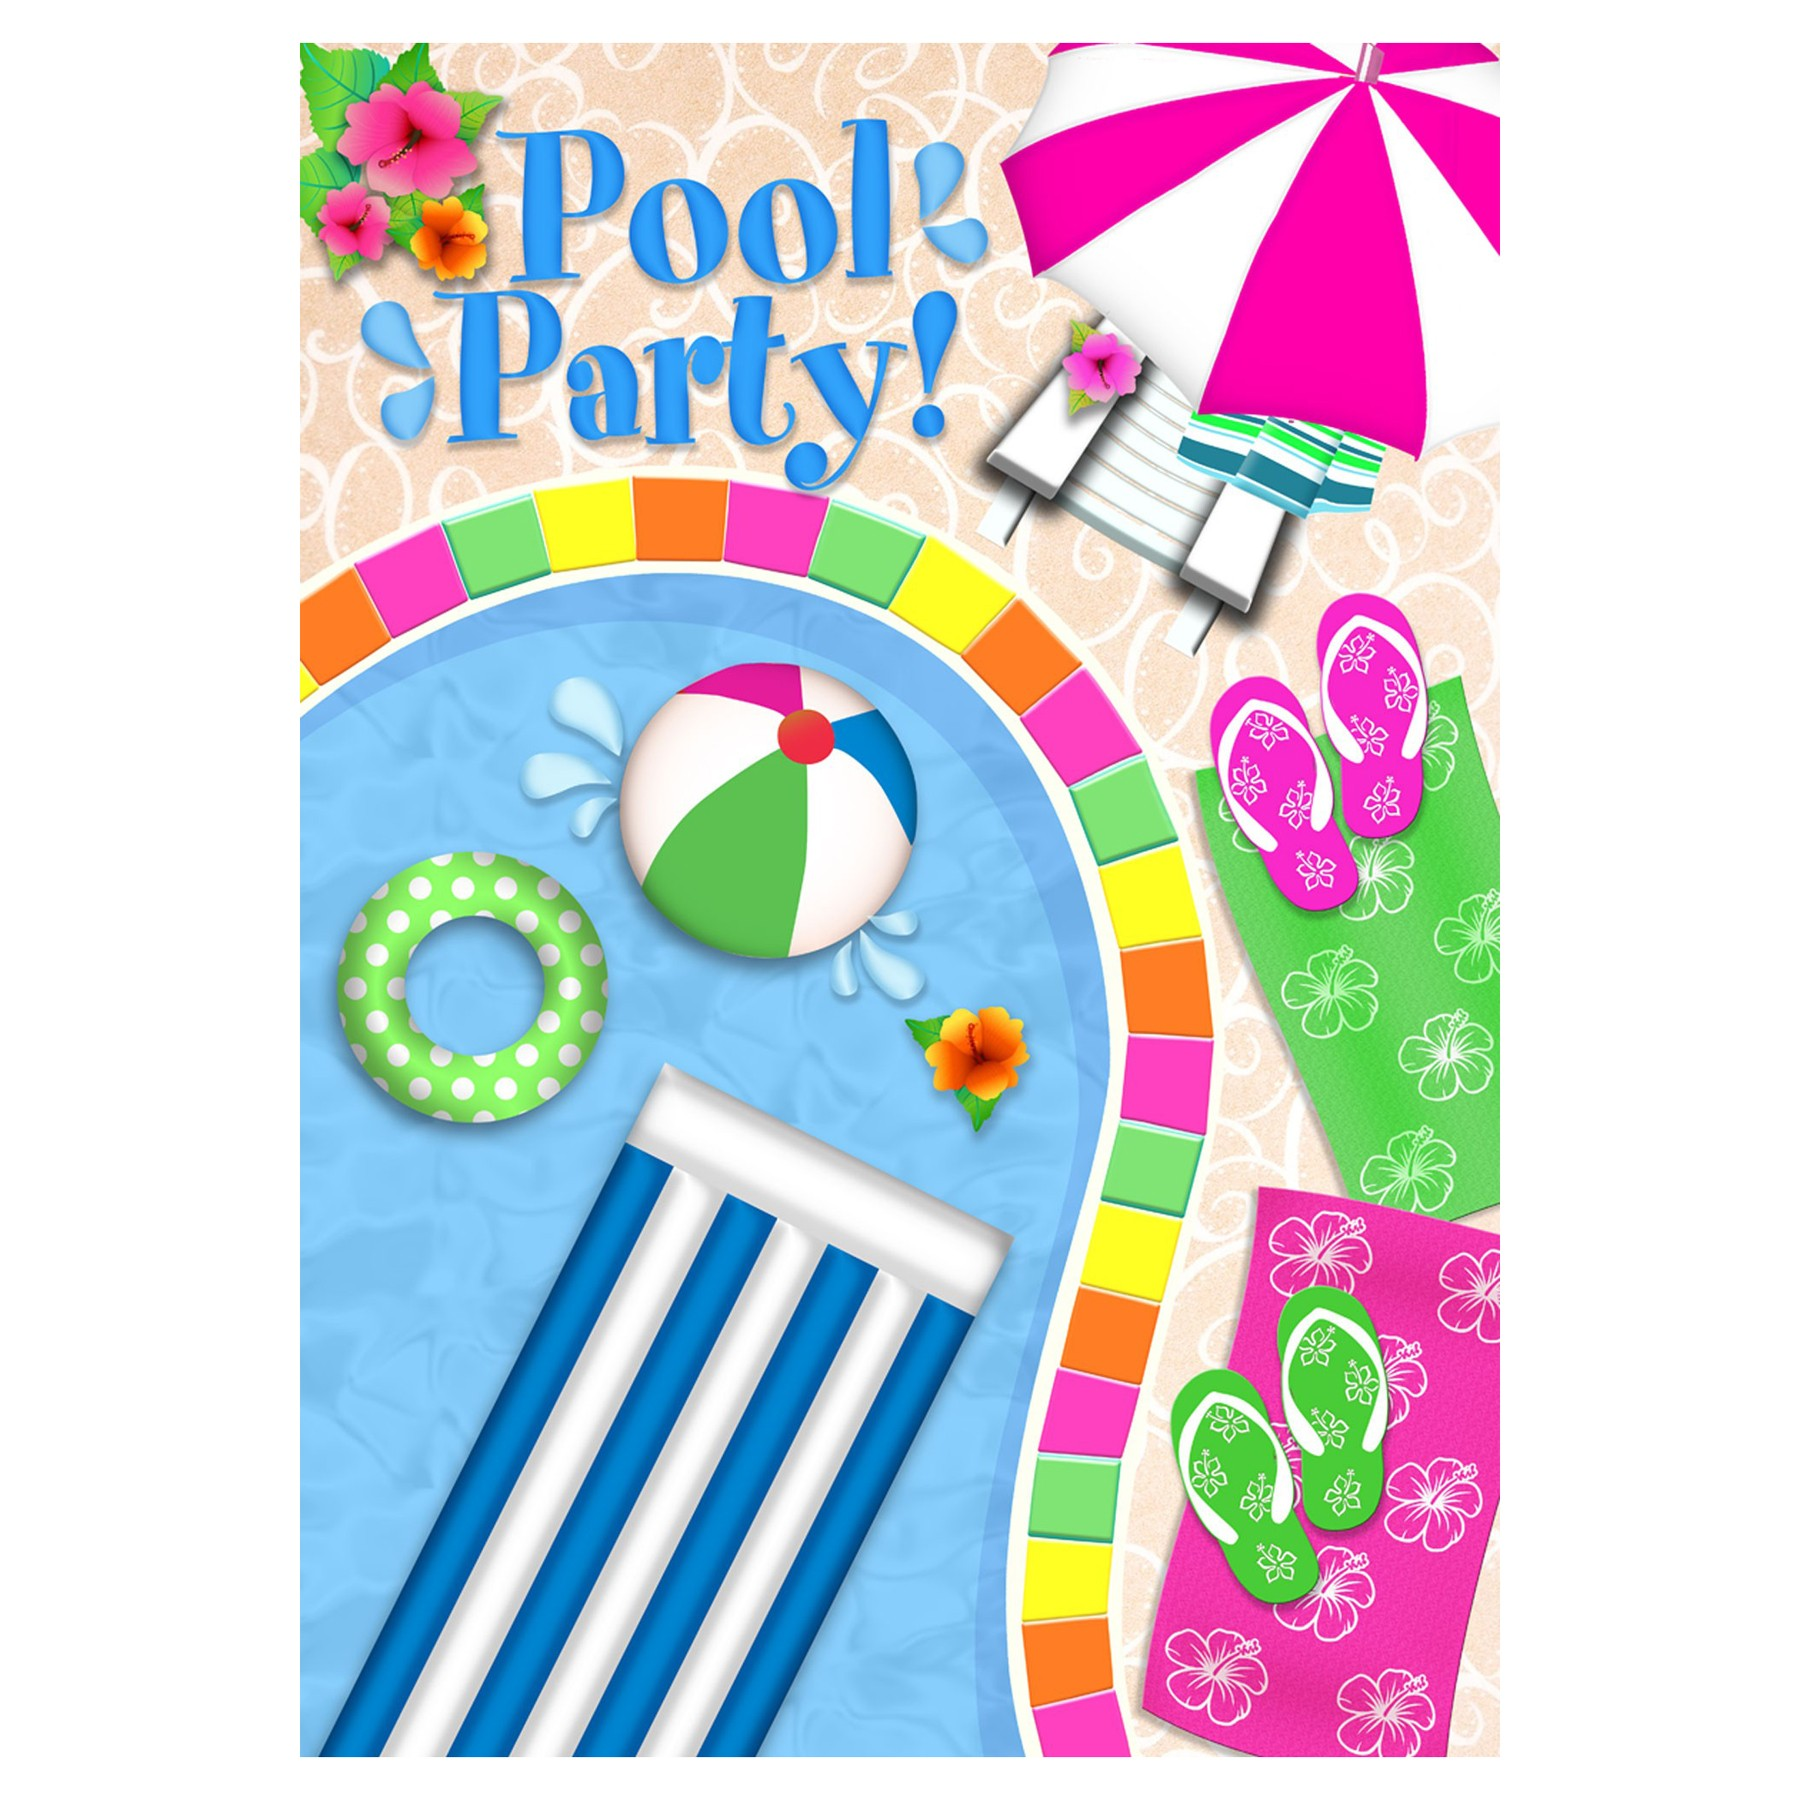 Pool party pictures clip art for Free clipart swimming pool party